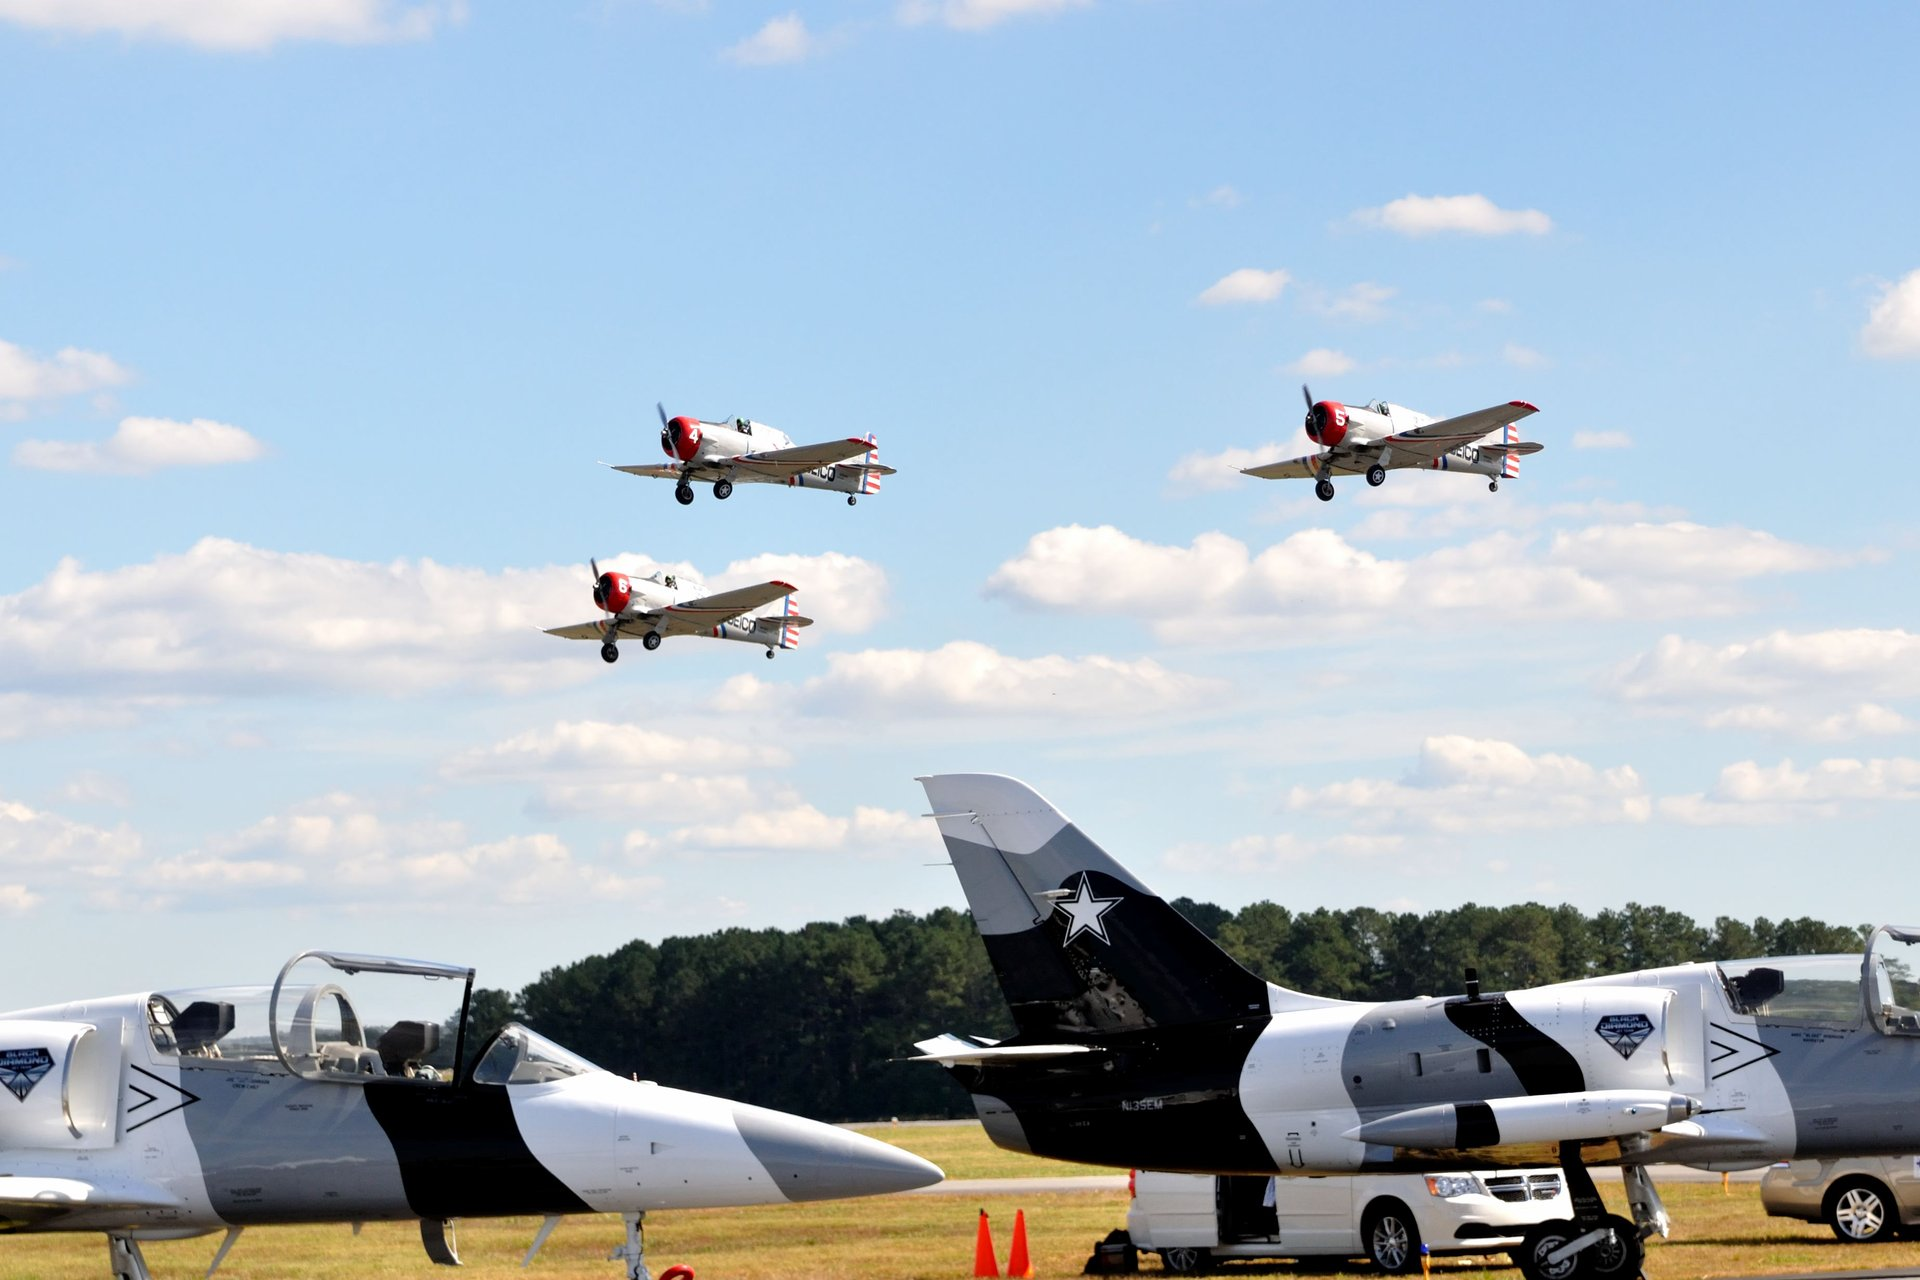 Wings Over North Georgia Air Show in Georgia - Best Season 2020